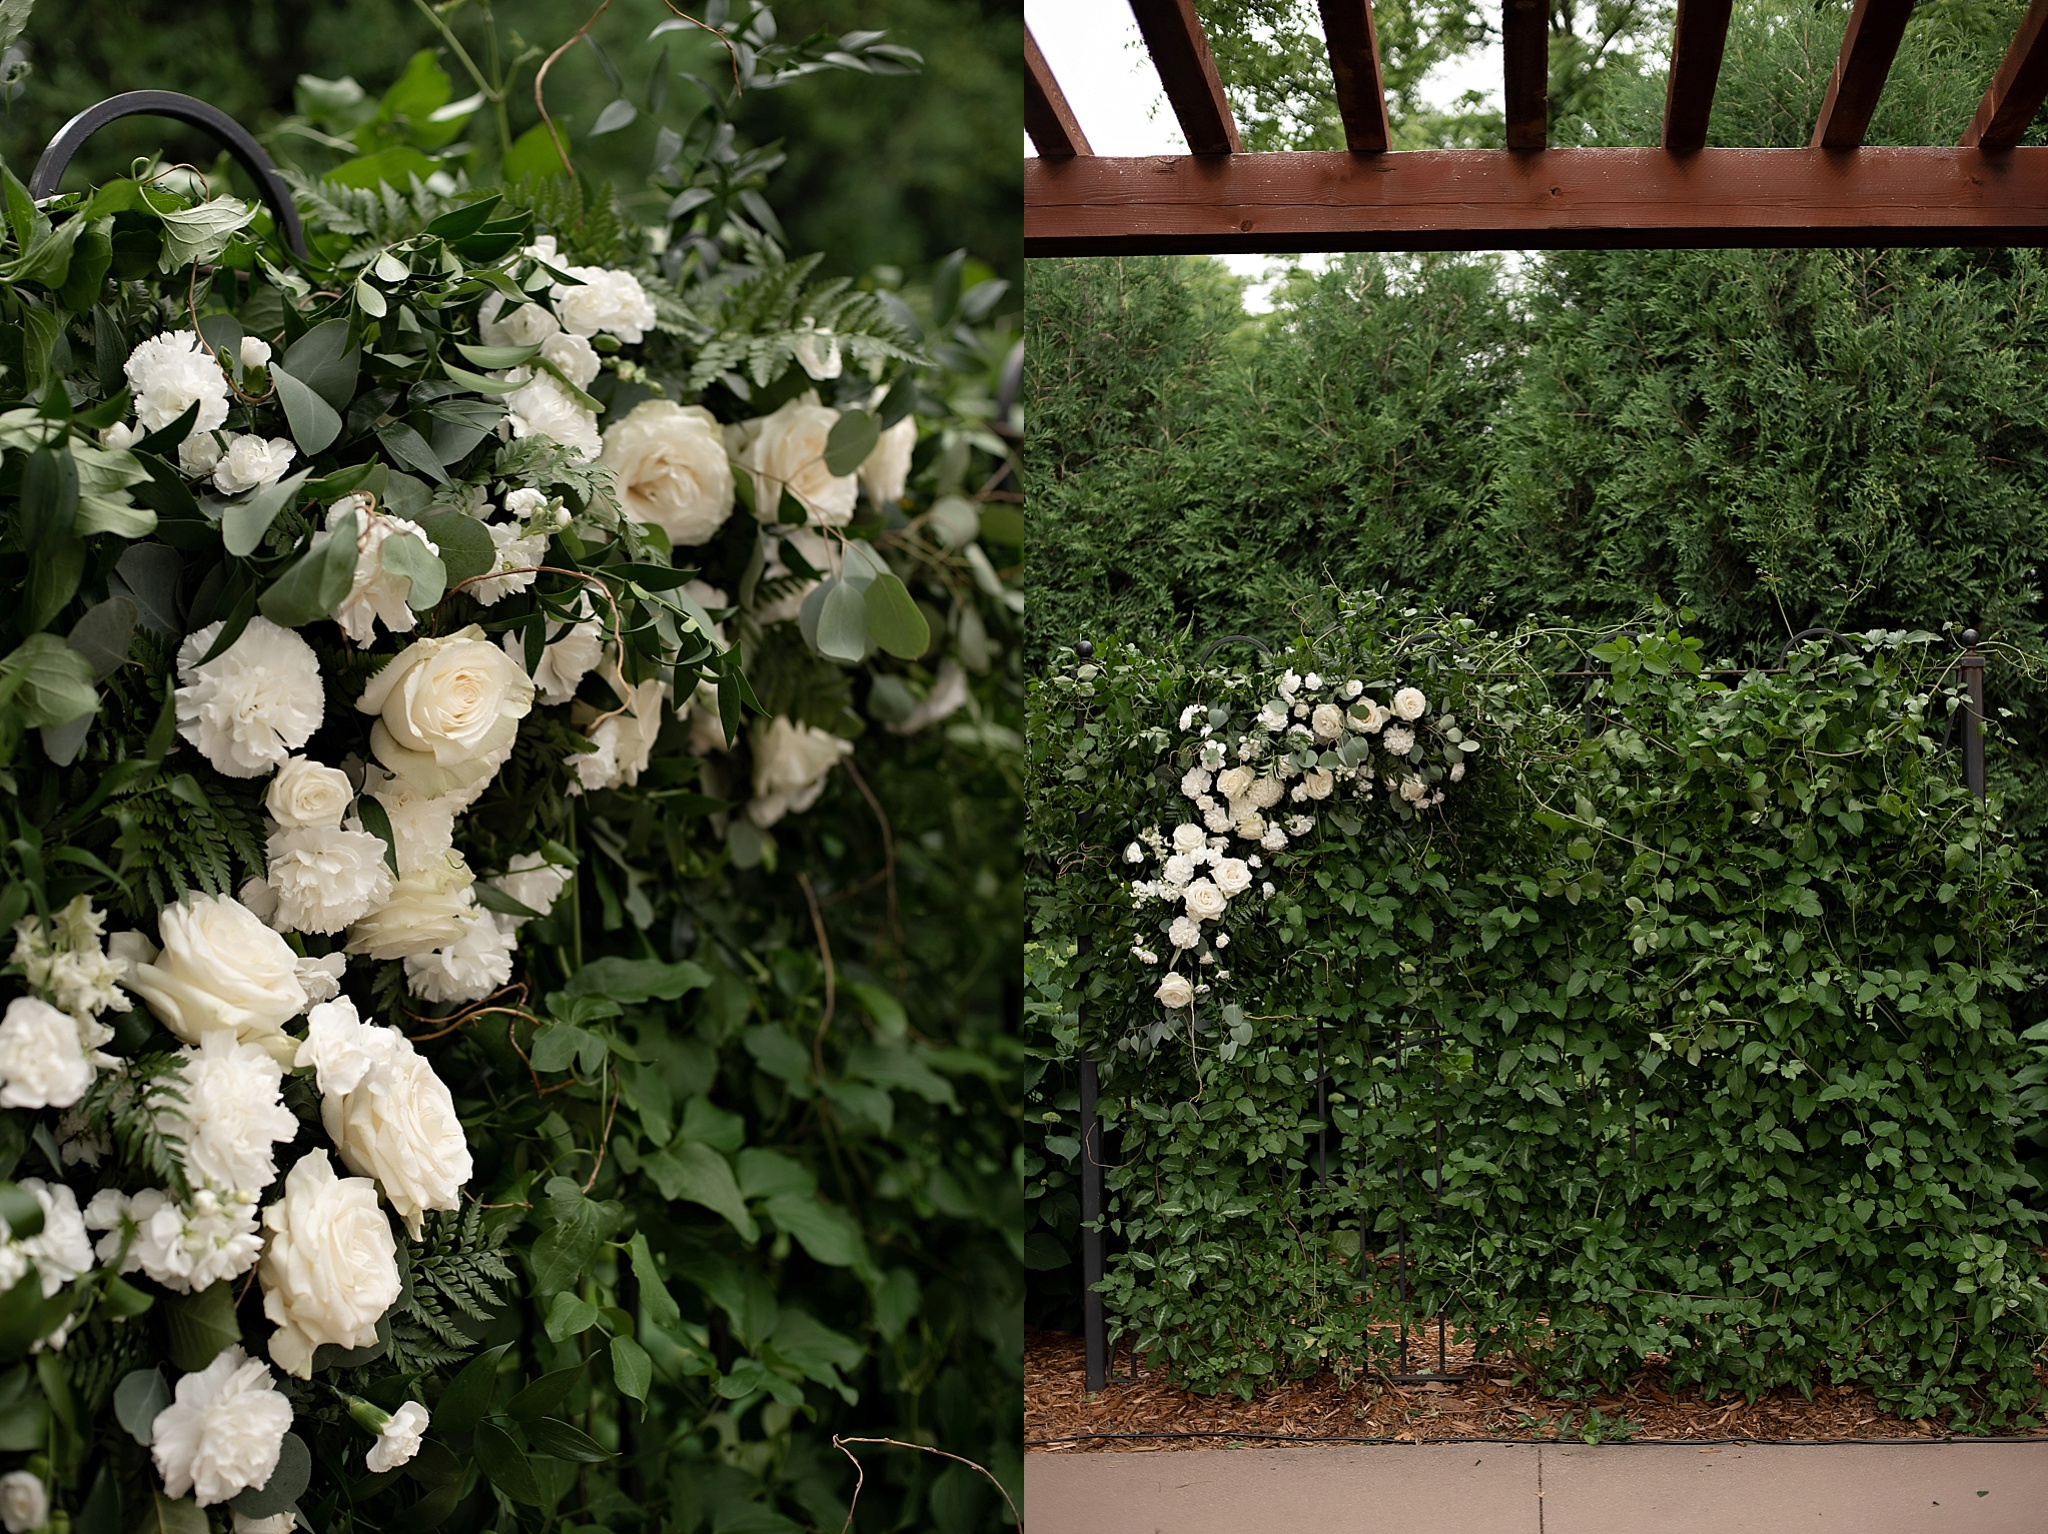 brickhouse florals wedding arch white floral design